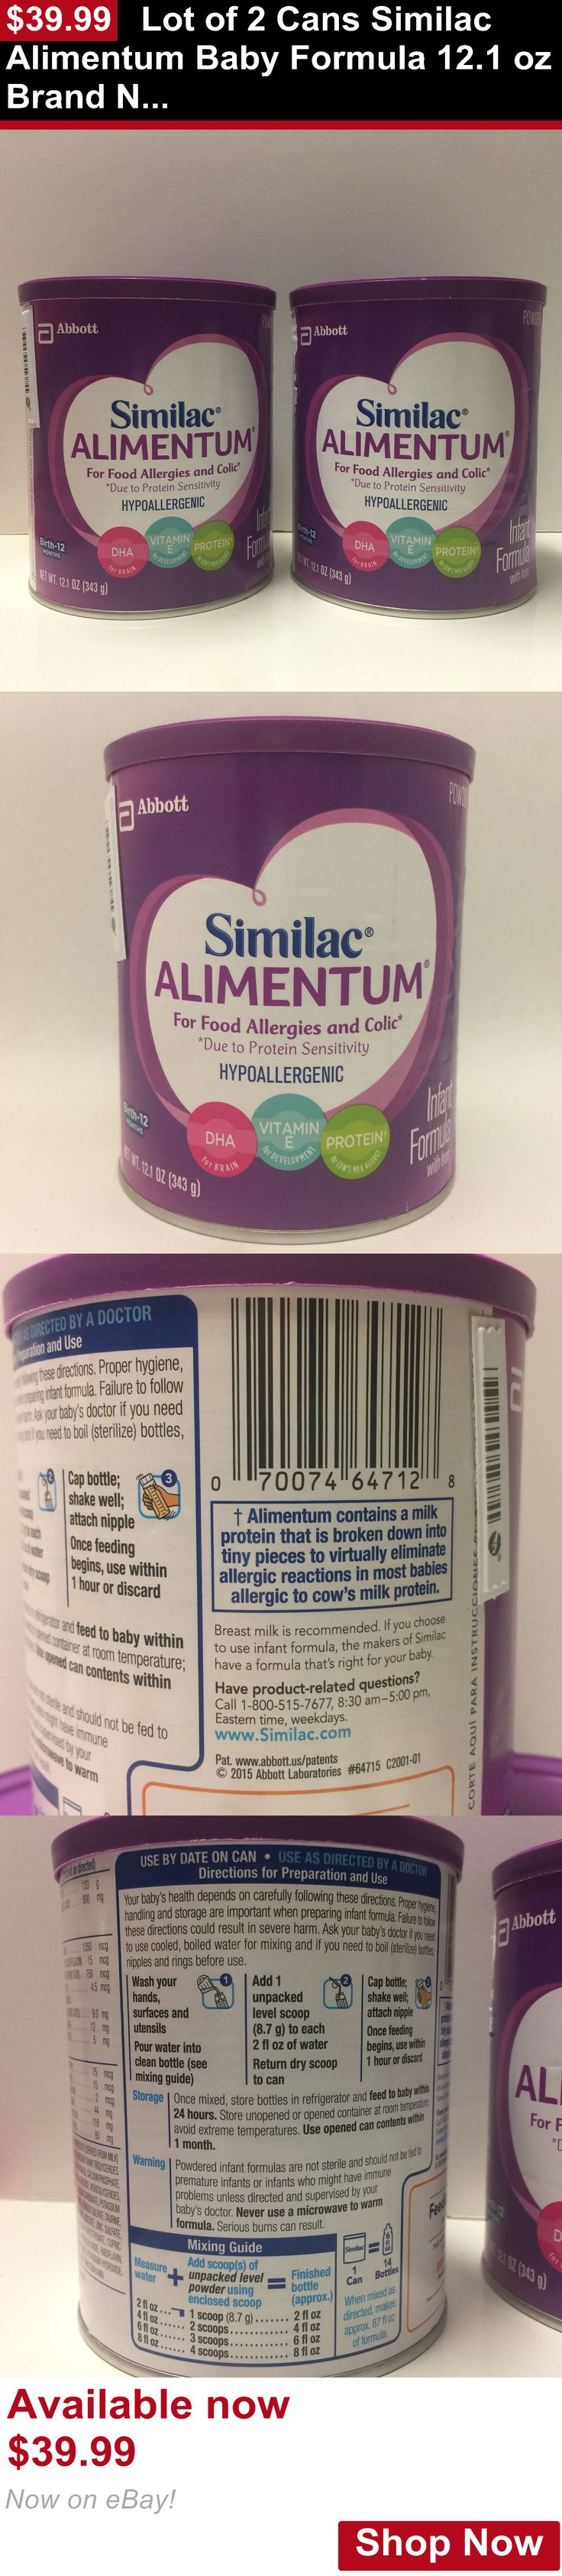 Baby Formula: Lot Of 2 Cans Similac Alimentum Baby Formula 12.1 Oz Brand New Exp. 09/2019 BUY IT NOW ONLY: $39.99